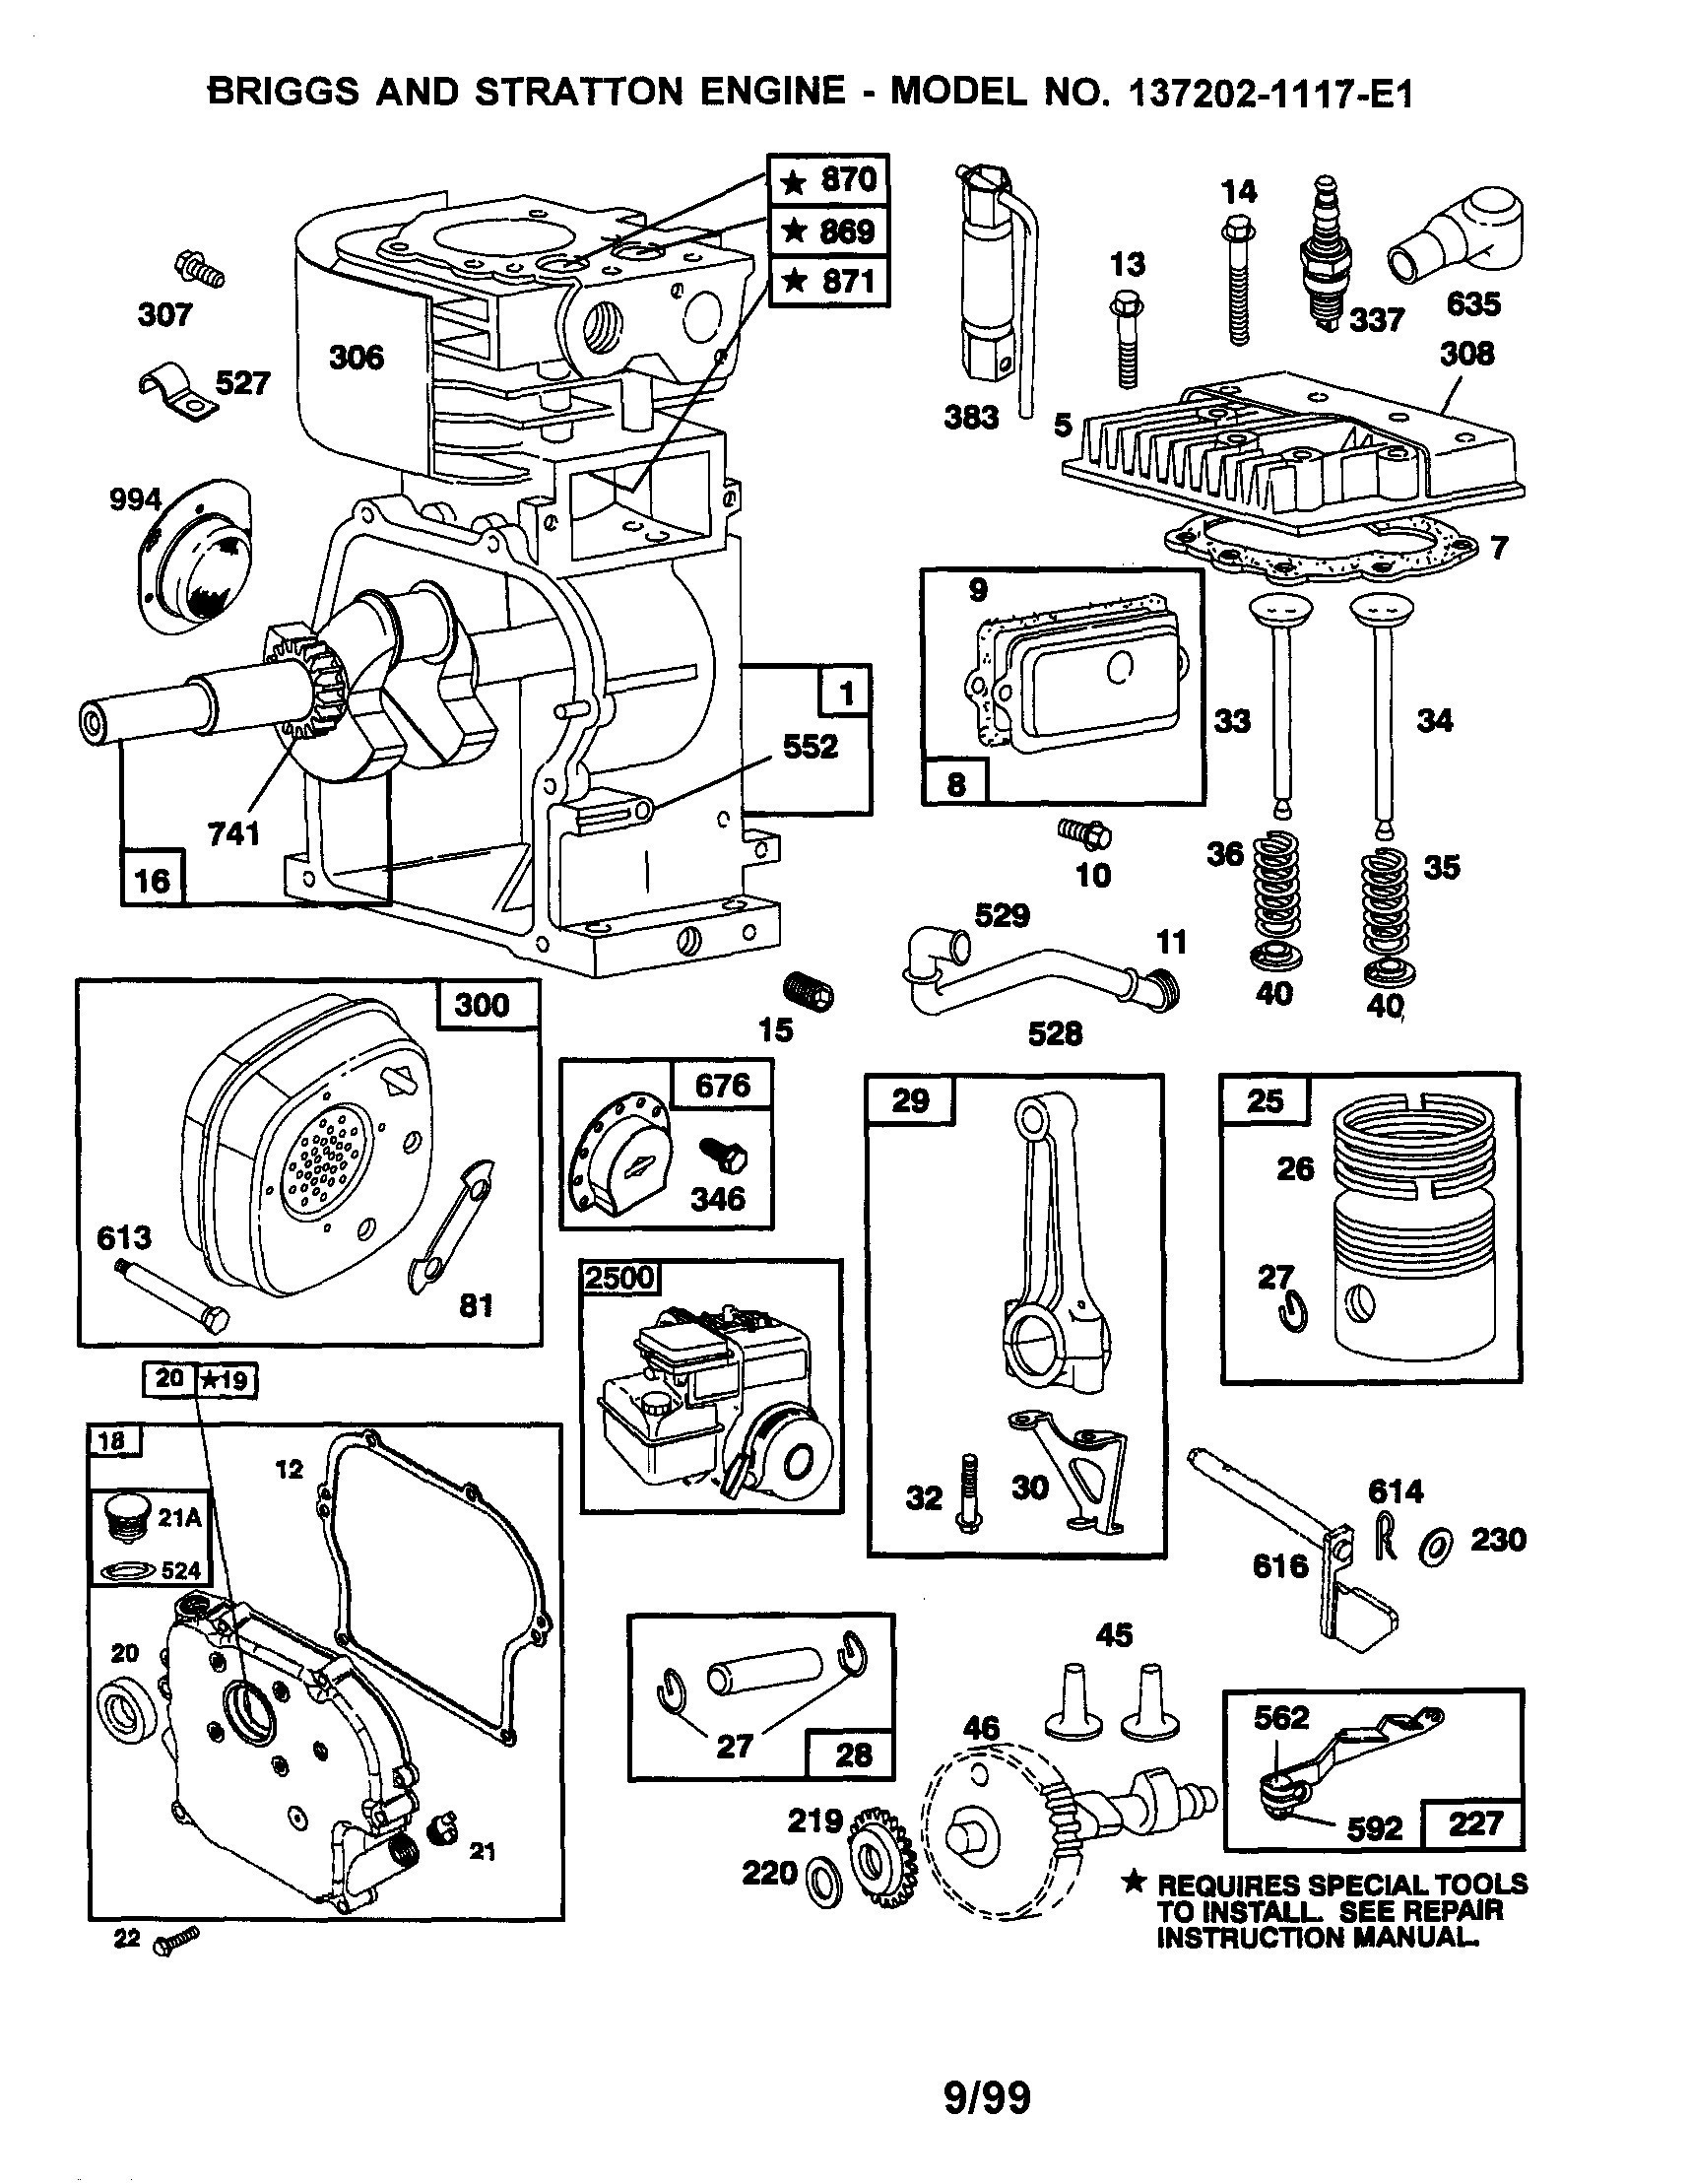 hight resolution of 19 hp briggs and stratton engine diagram switch diagram u2022 rh 140 82 24 126 briggs